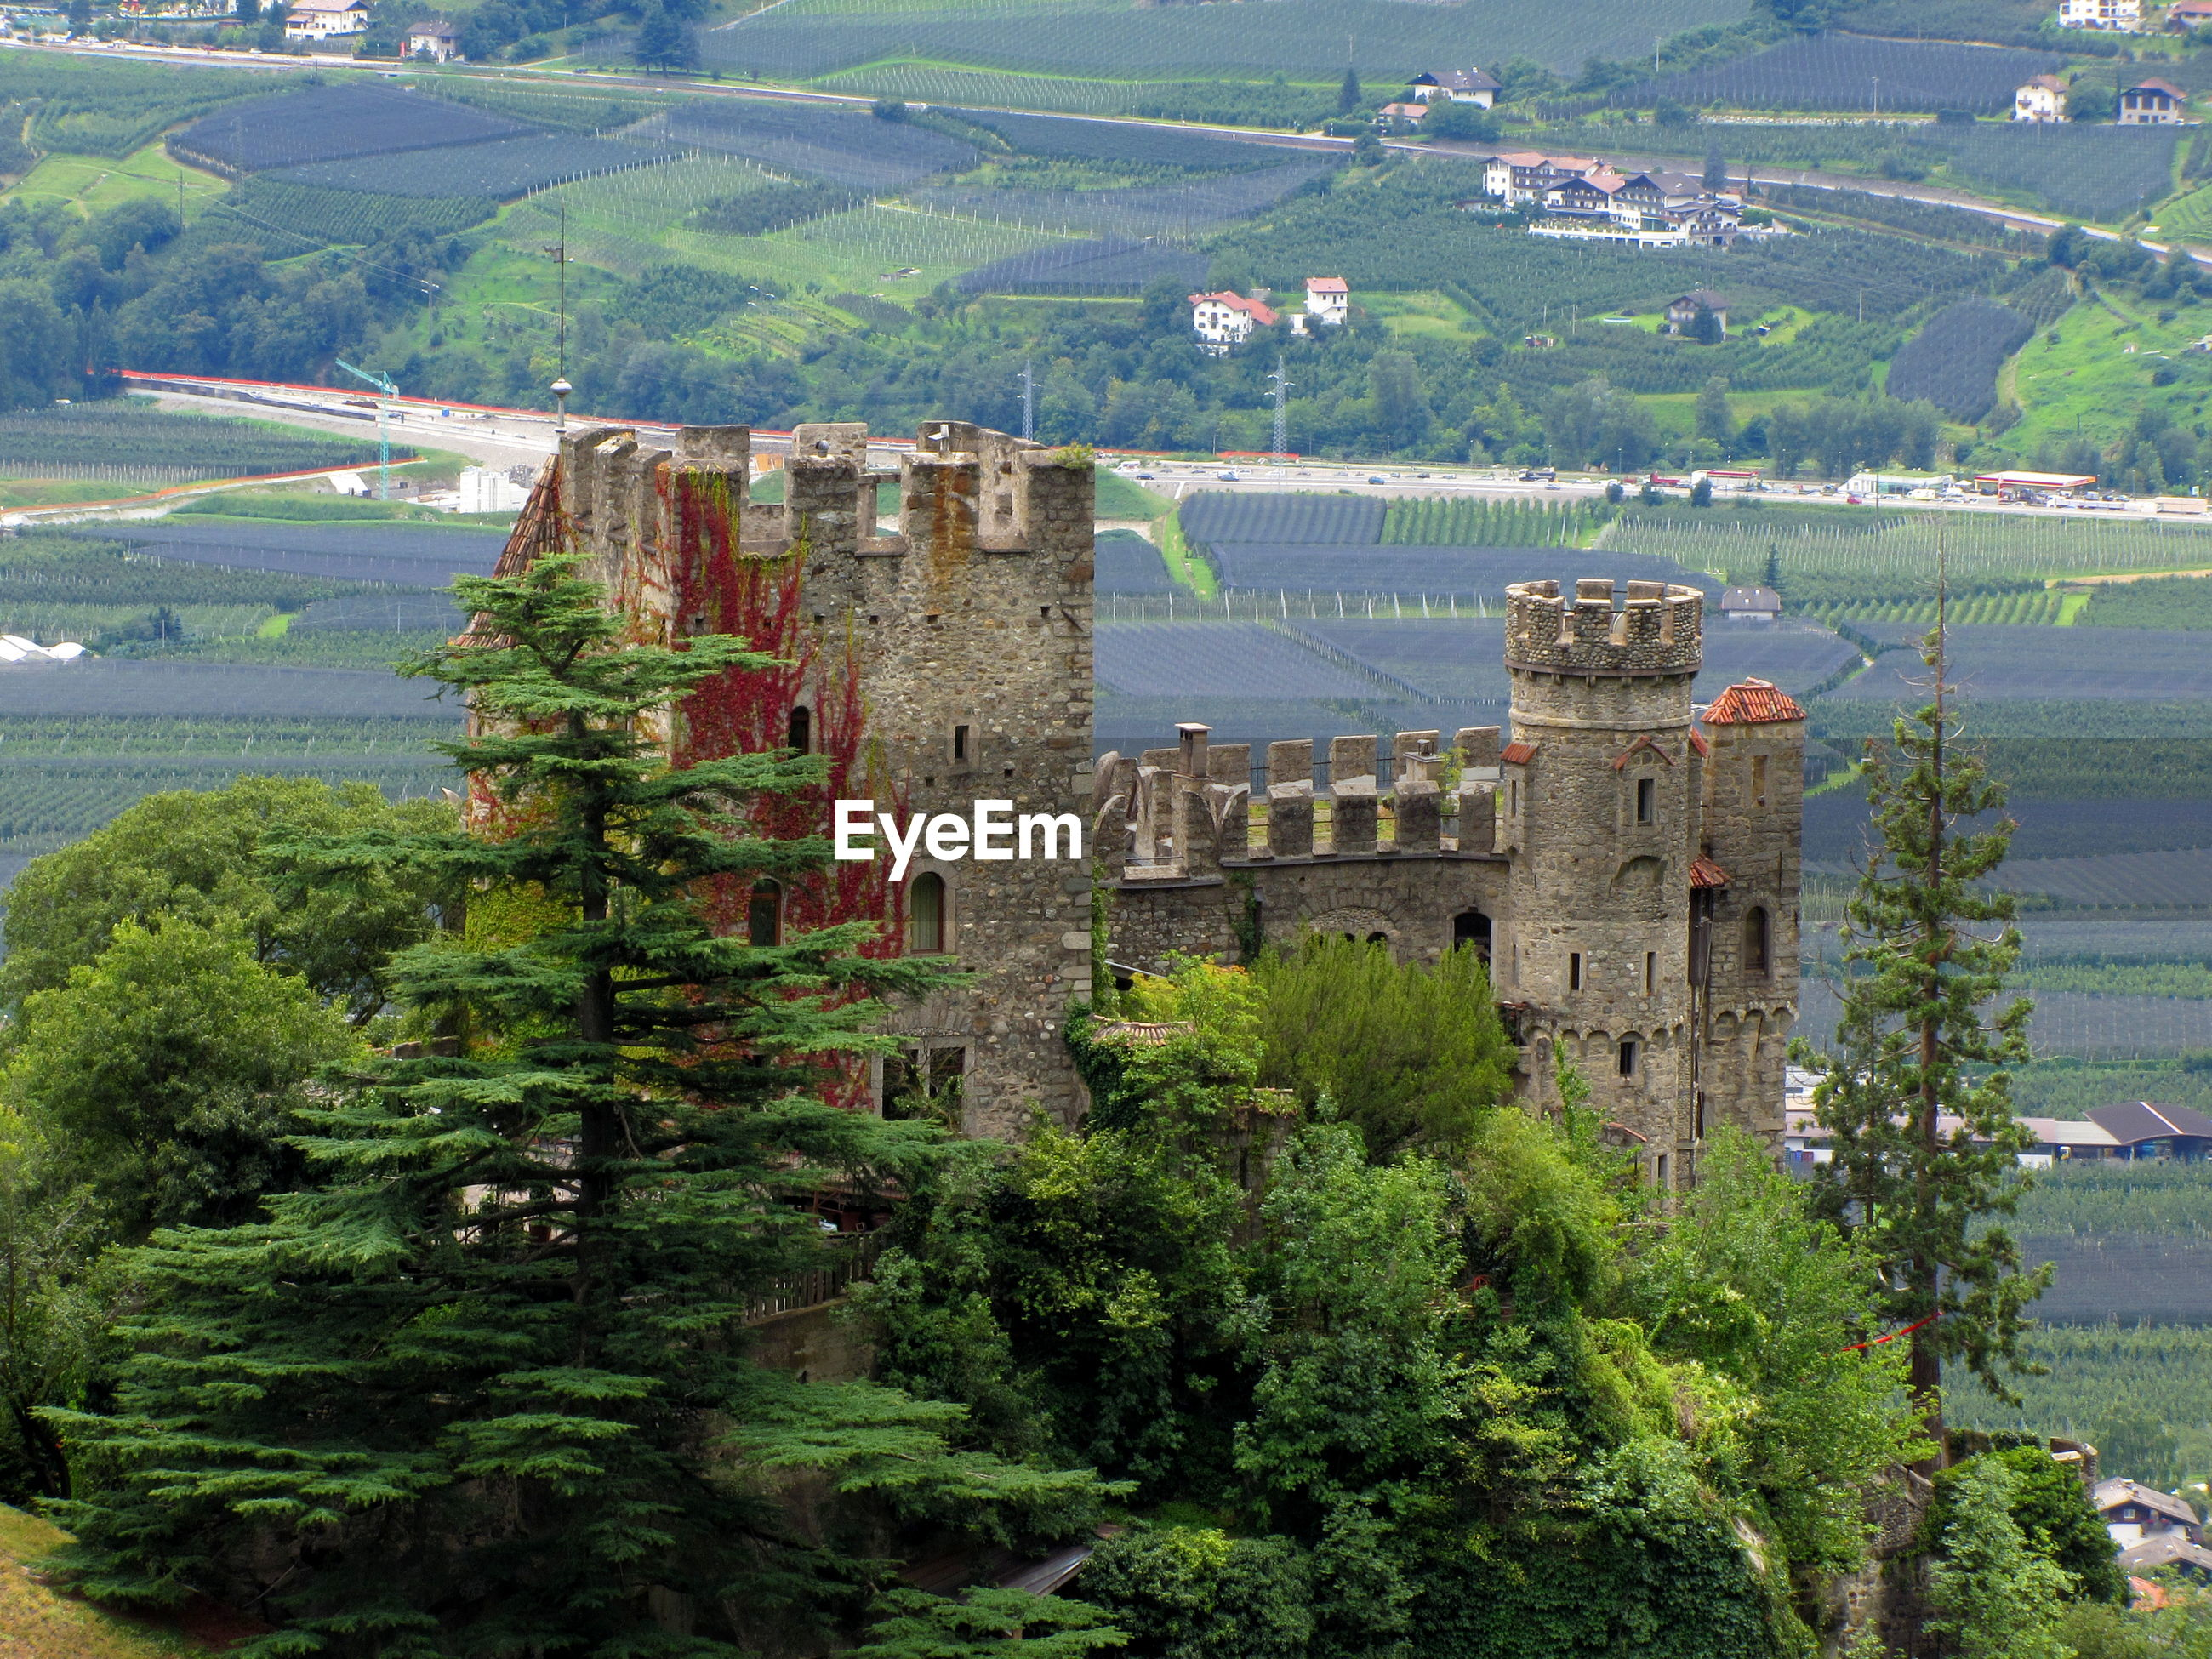 High angle view of castle against agricultural field